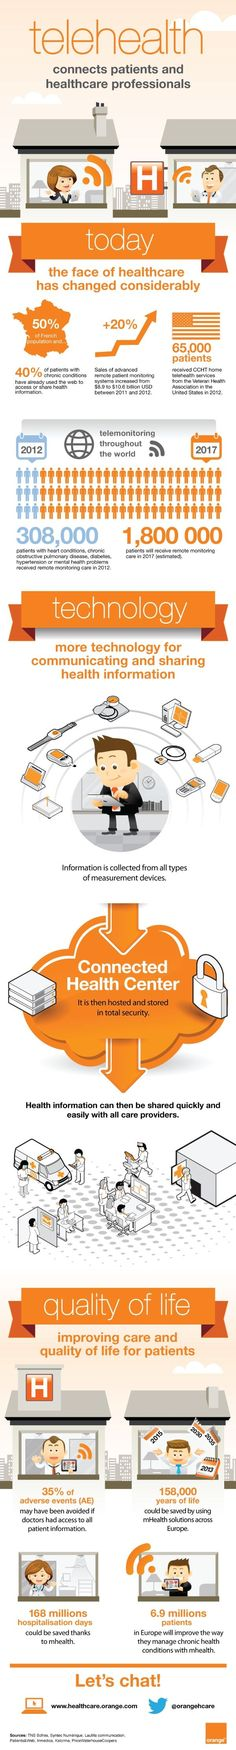 Top 20 HIT infographics of 2013- #13: How Telehealth Connects Patients & Healthcare Professionals